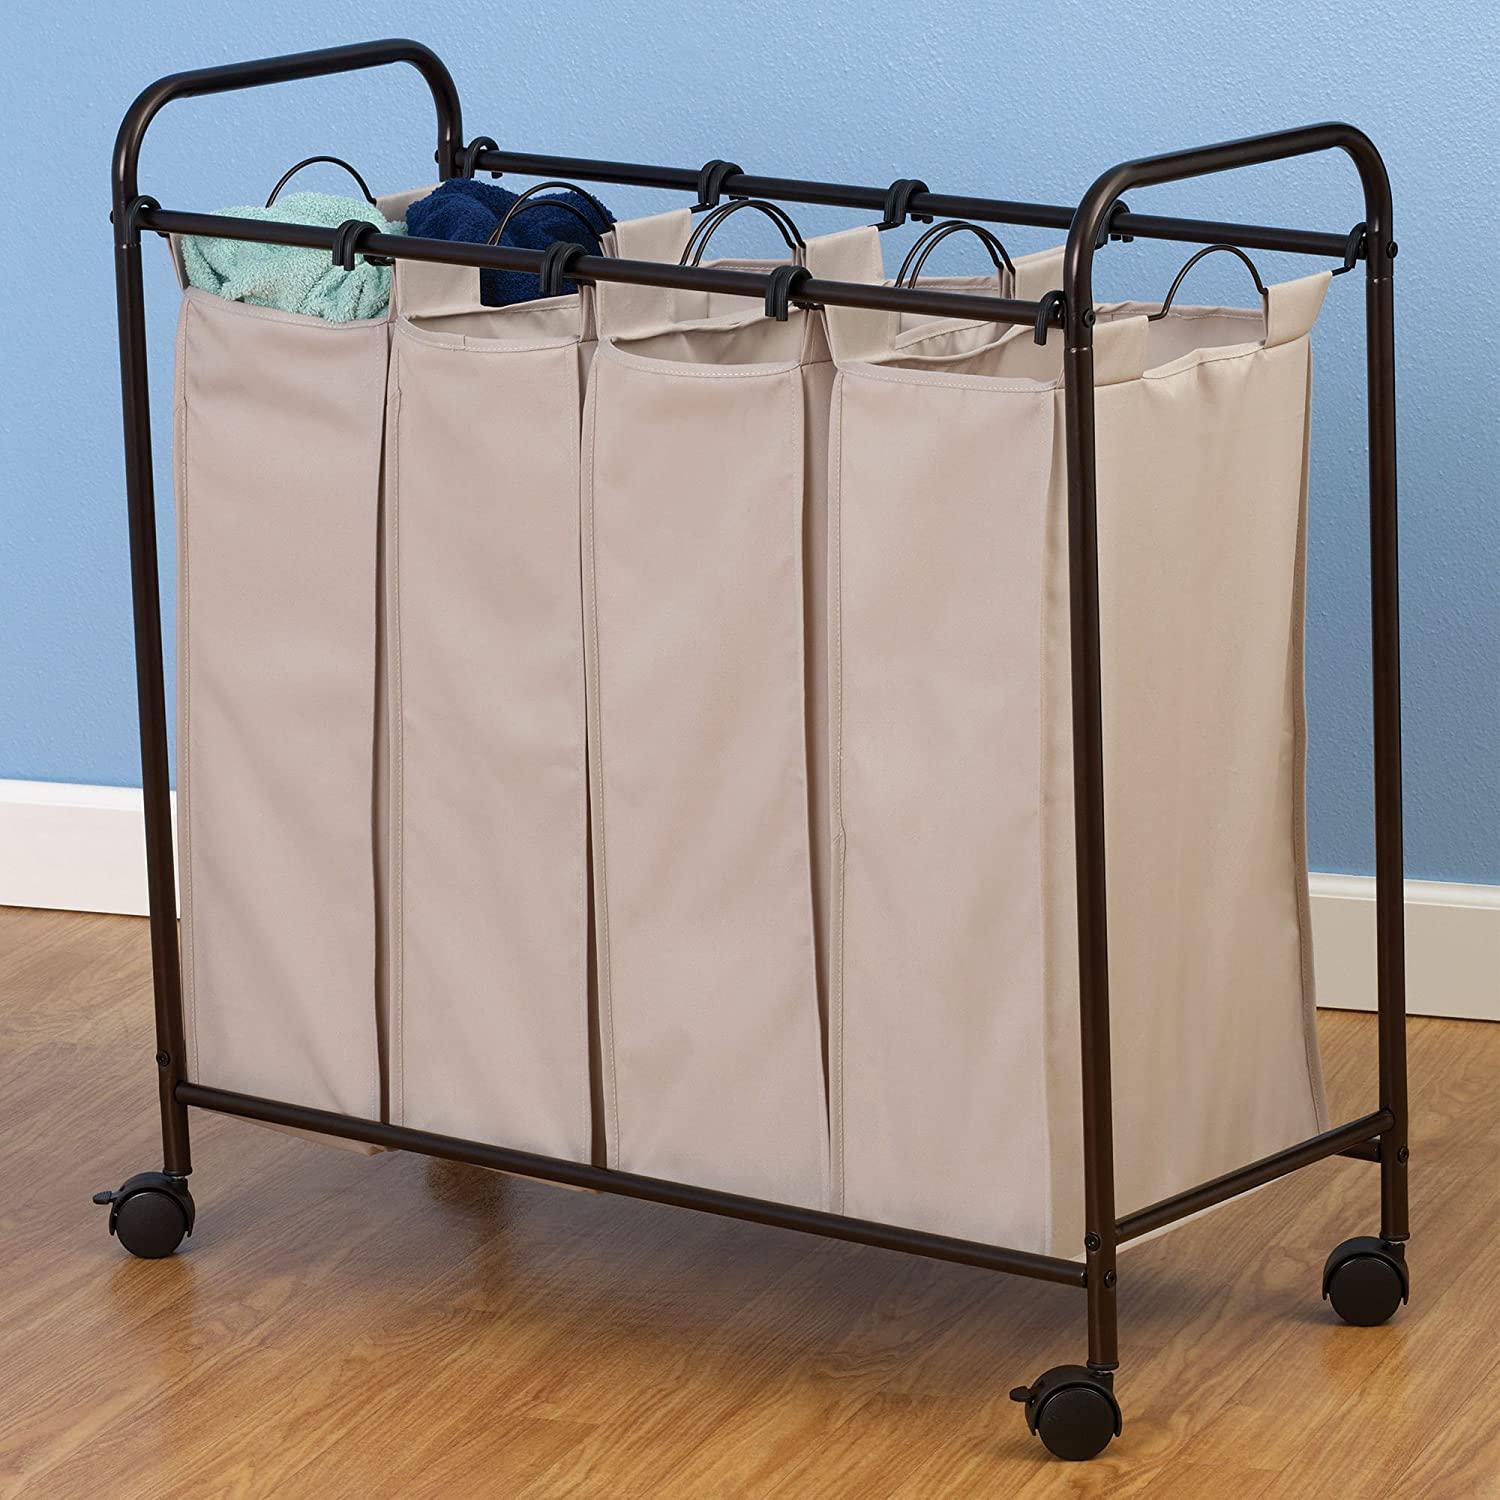 amazoncom household essentials rolling quad laundry sorter with removable hamper bags antique bronze frame home u0026 kitchen